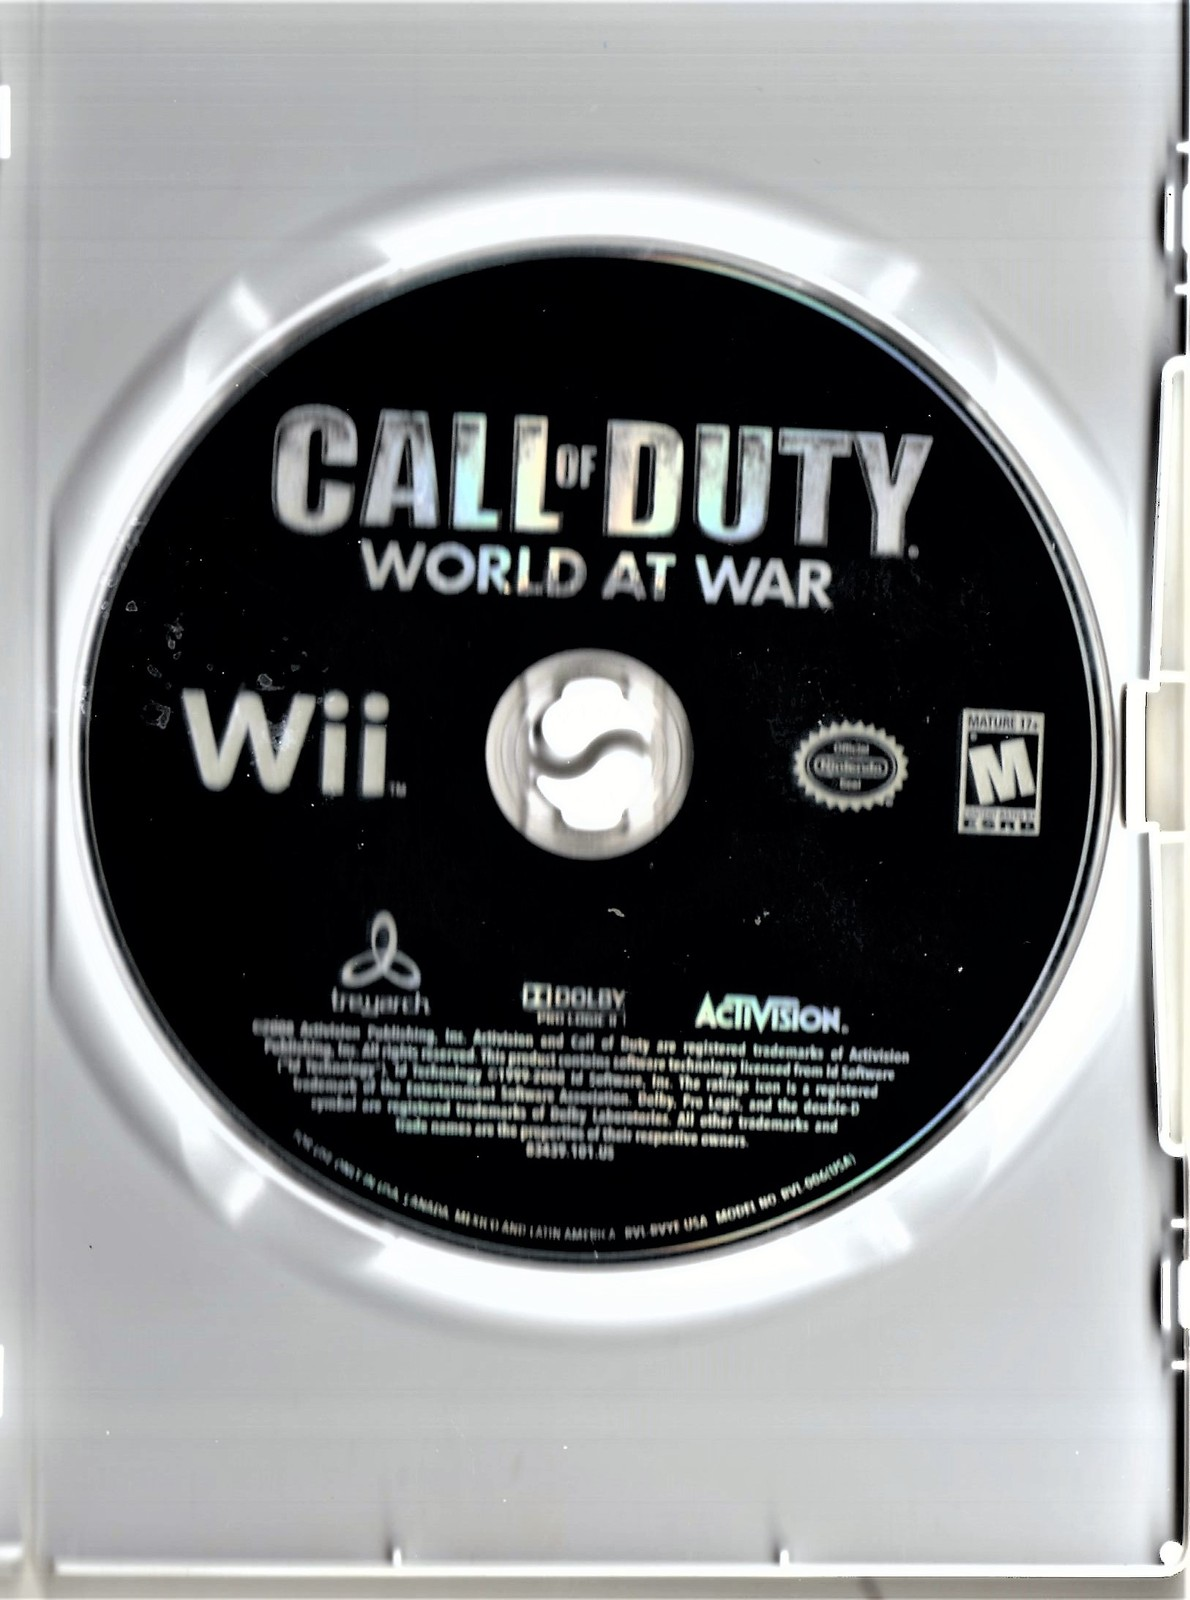 Wii - Call Of Duty World At War image 5